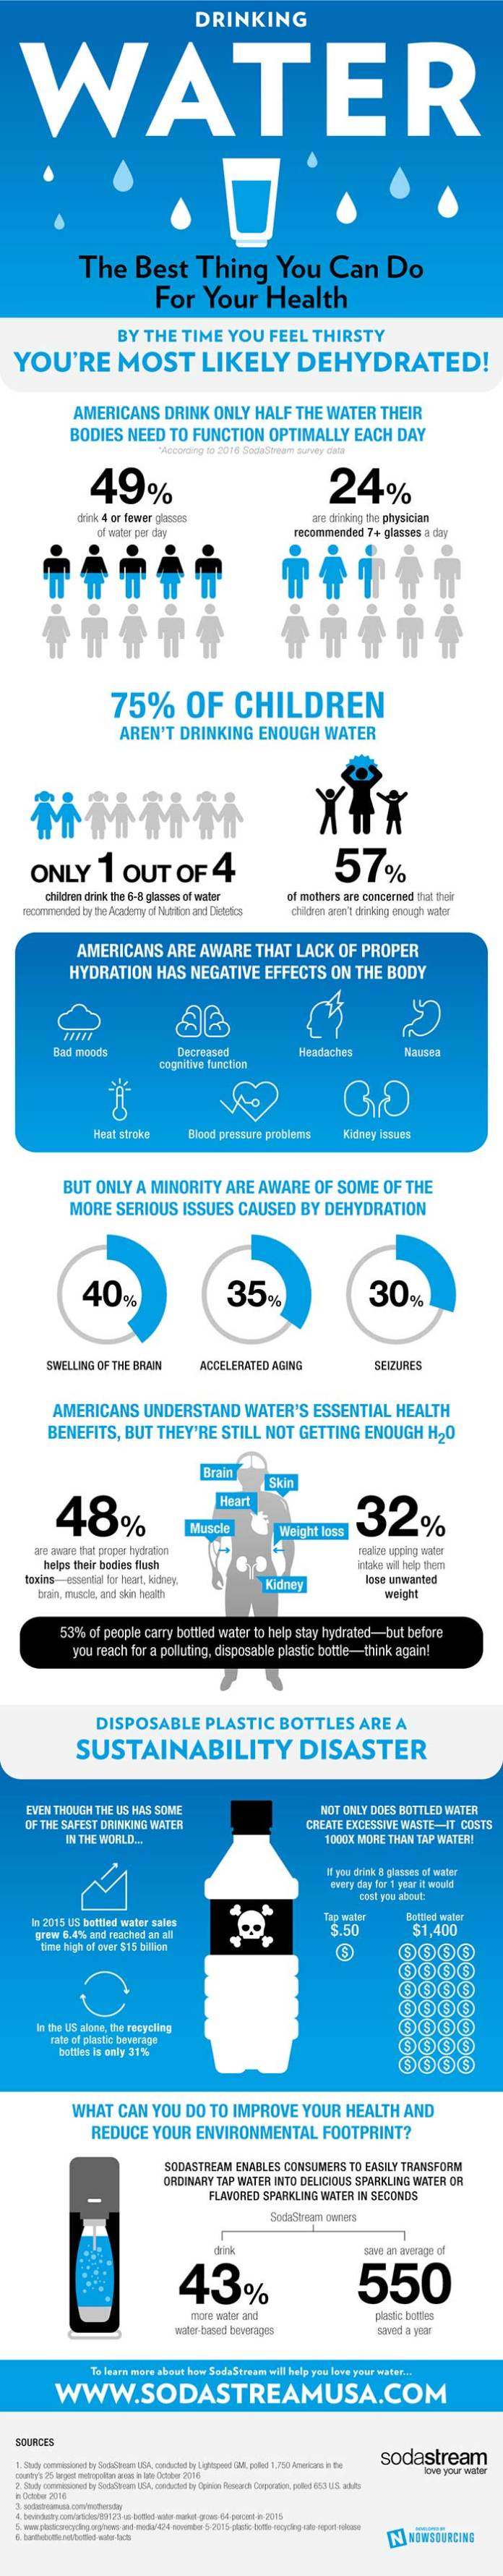 how much water do we need to drink, drinking soda. Infographic about water in our body.